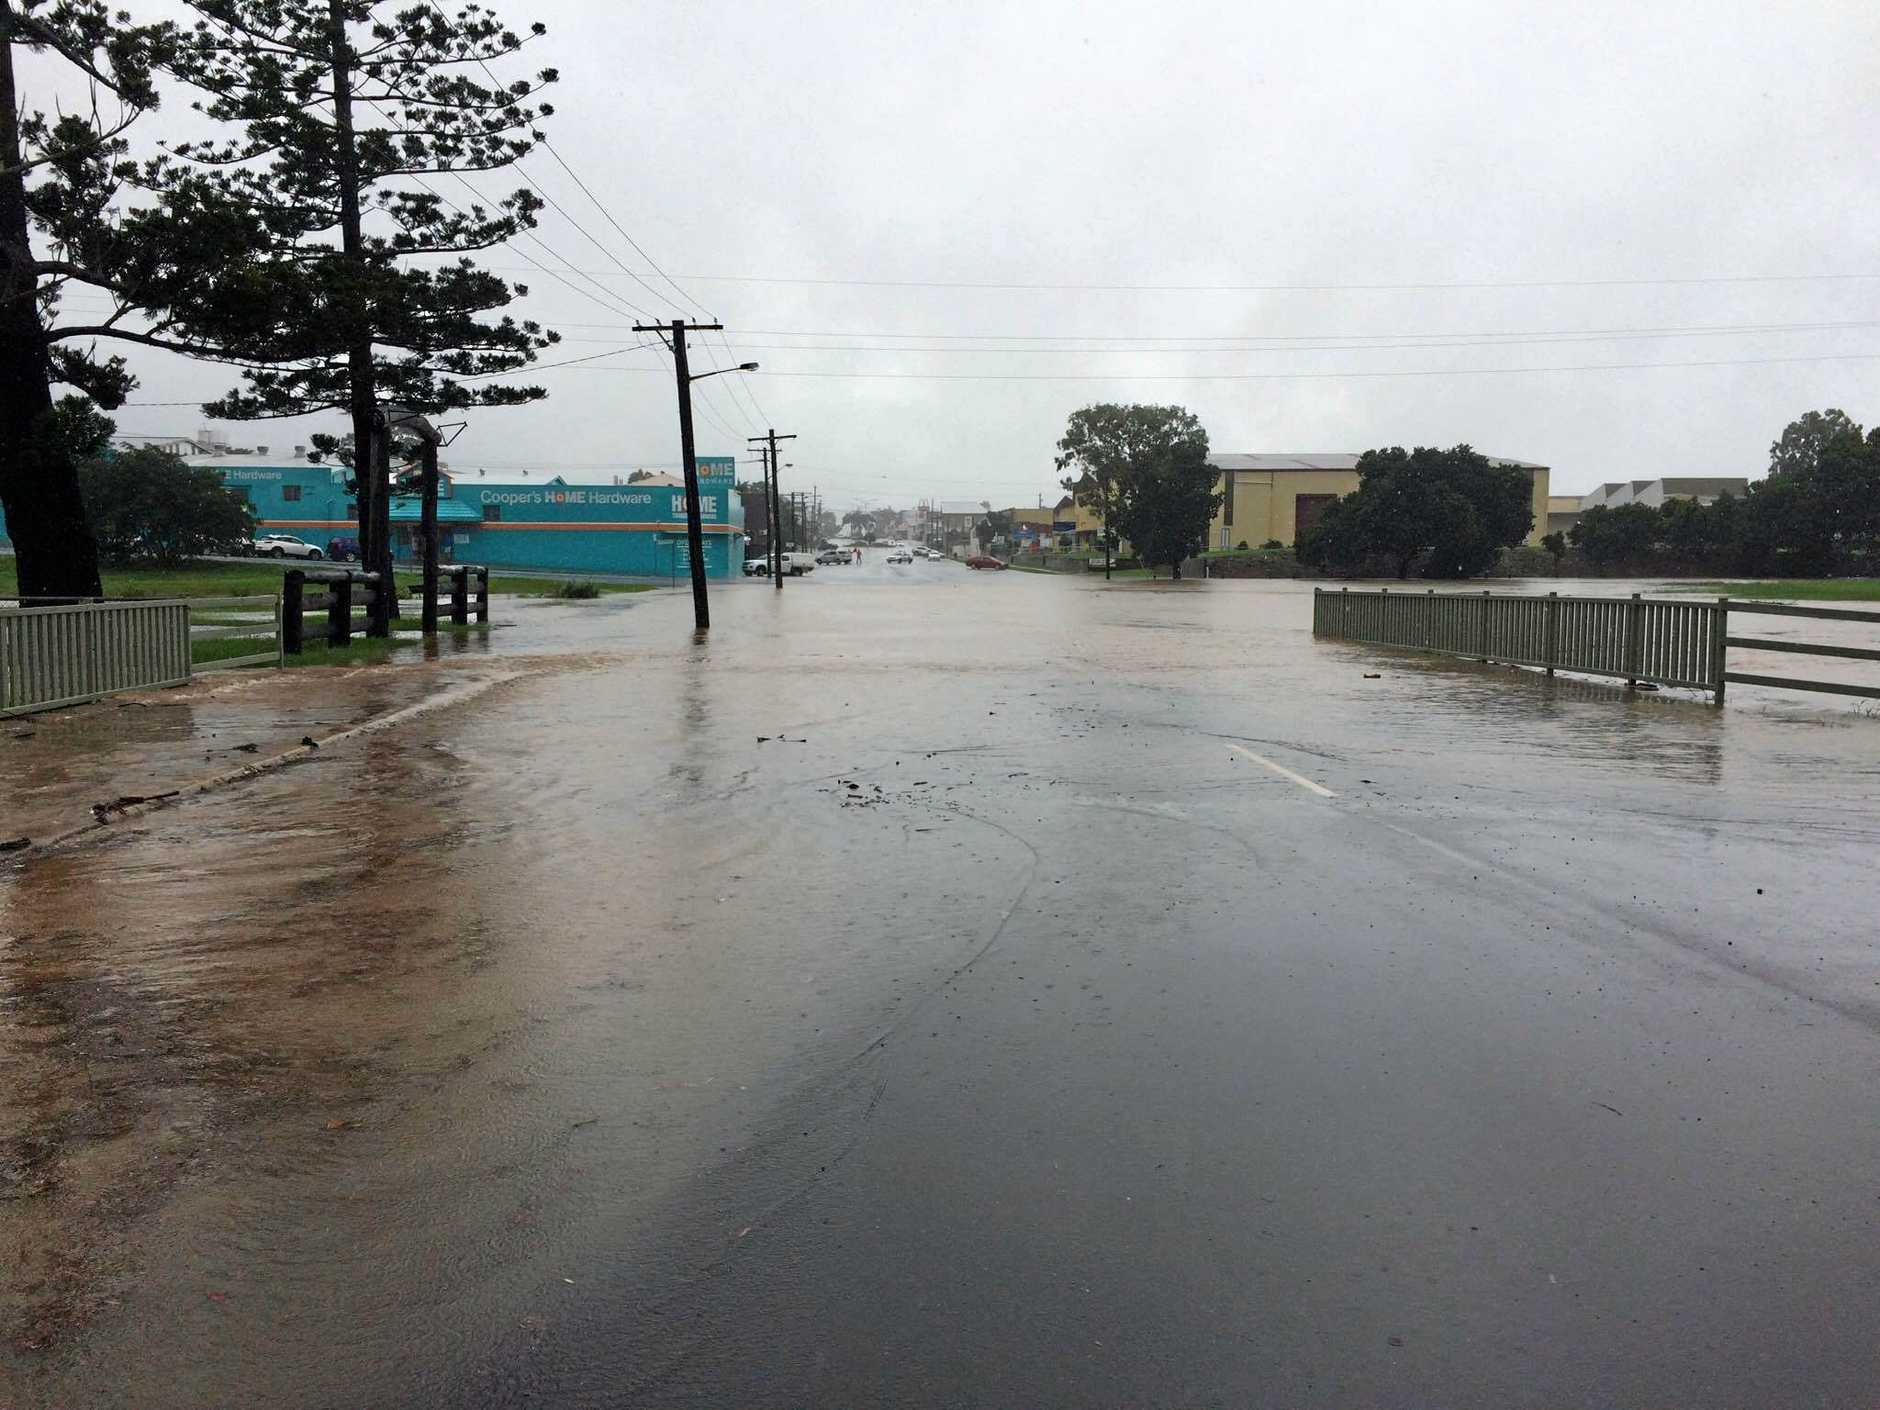 Targo St is closed. The drain at the intersection of George and Targo, the lowest point in Bundaberg city, has overflowed.